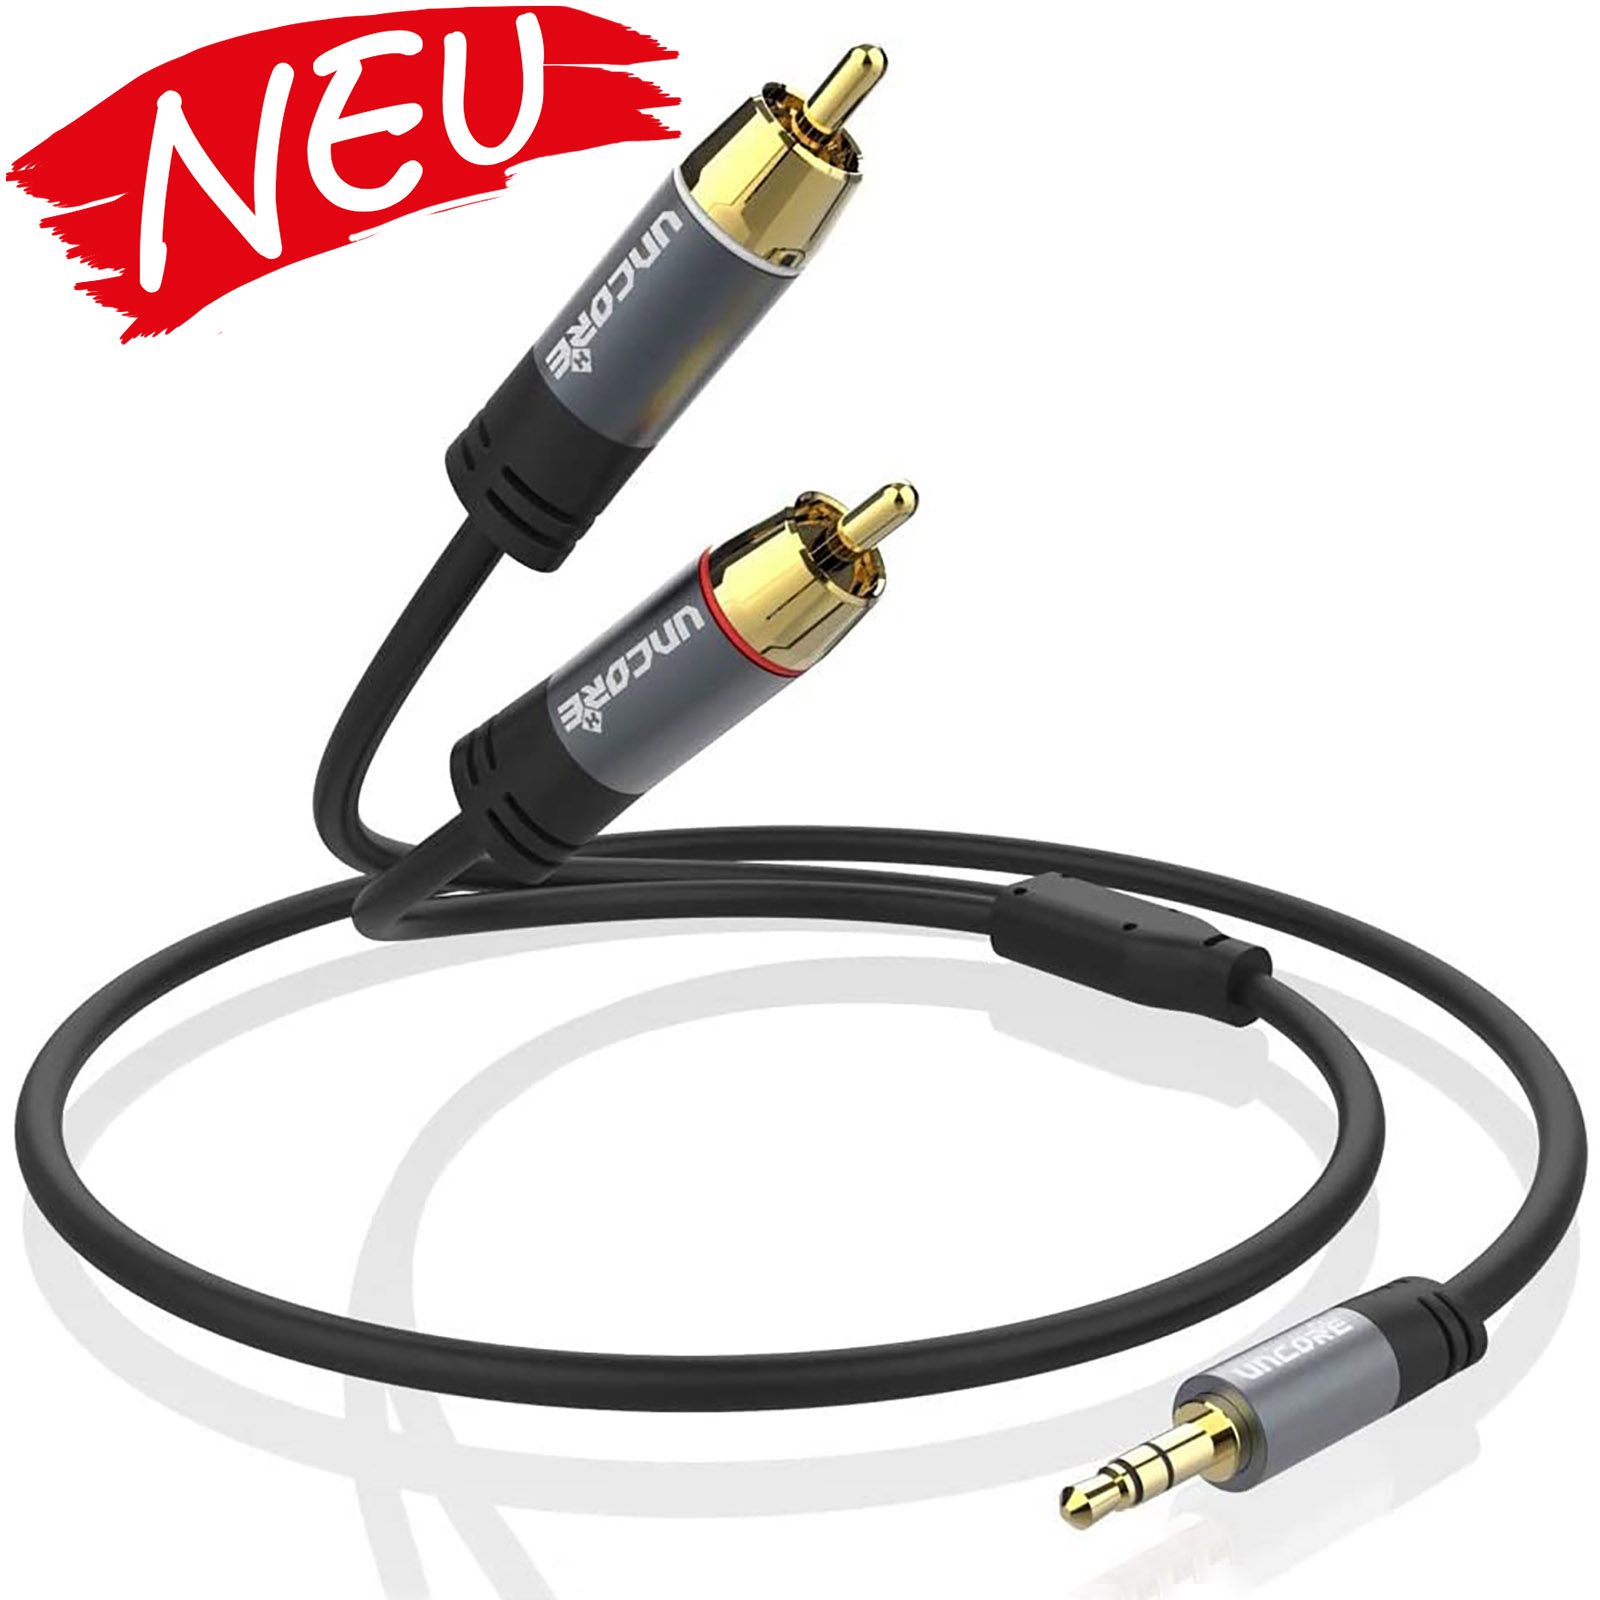 Uncorex  Cinch Kabel 3,5mm Klinke auf 2X RCA Chinch Stecker Y Splitter Cinch auf Klinke Stereo Audio Aux Kabel (24K Vergoldet) - 1M